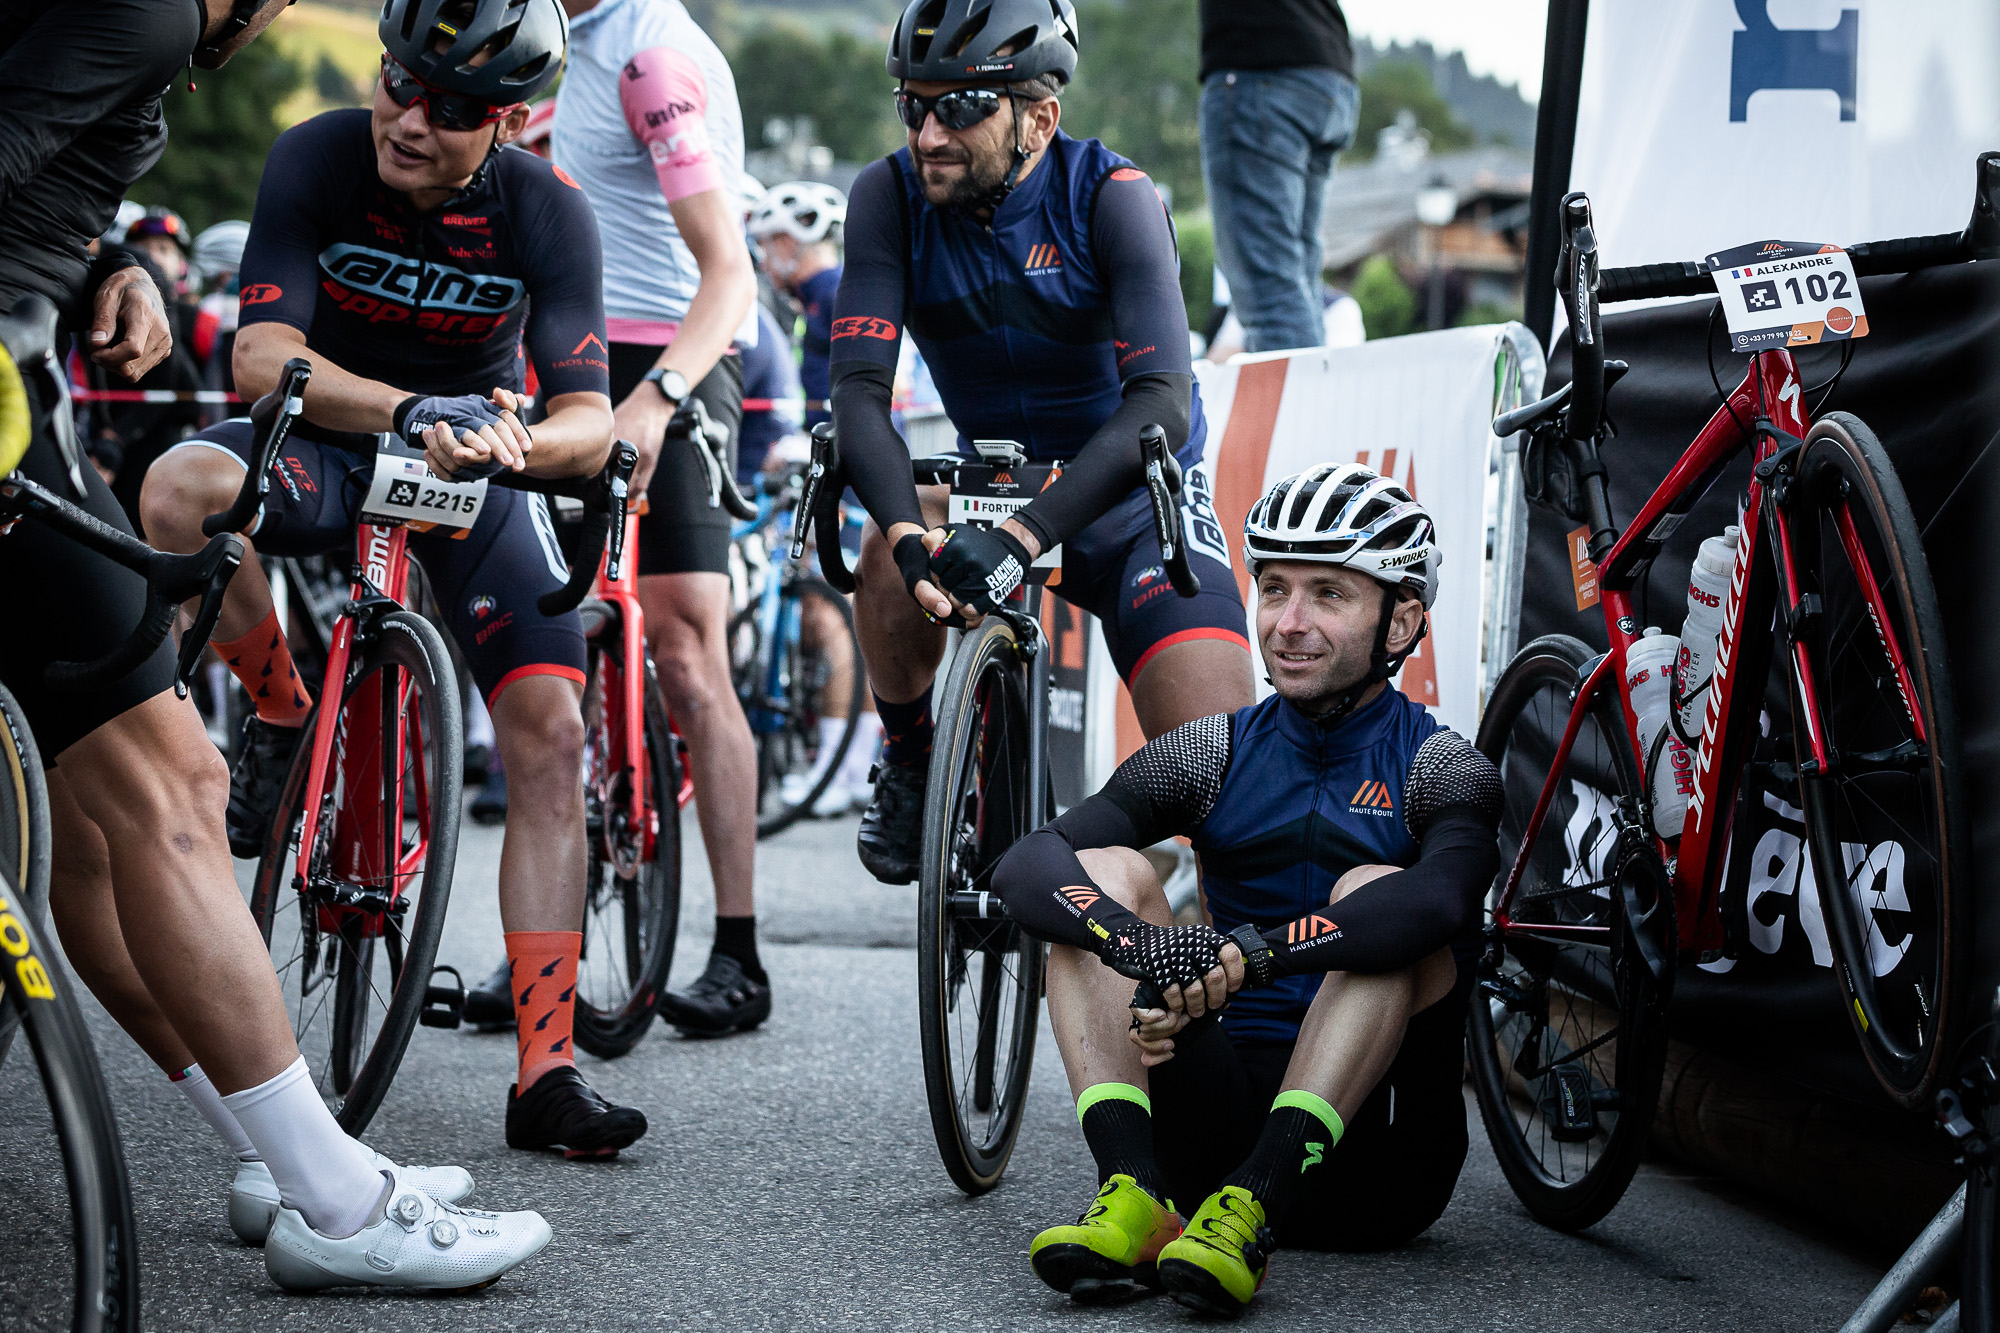 l_salino_hauteRouteAlps3_stage2_190826_0042_2000px